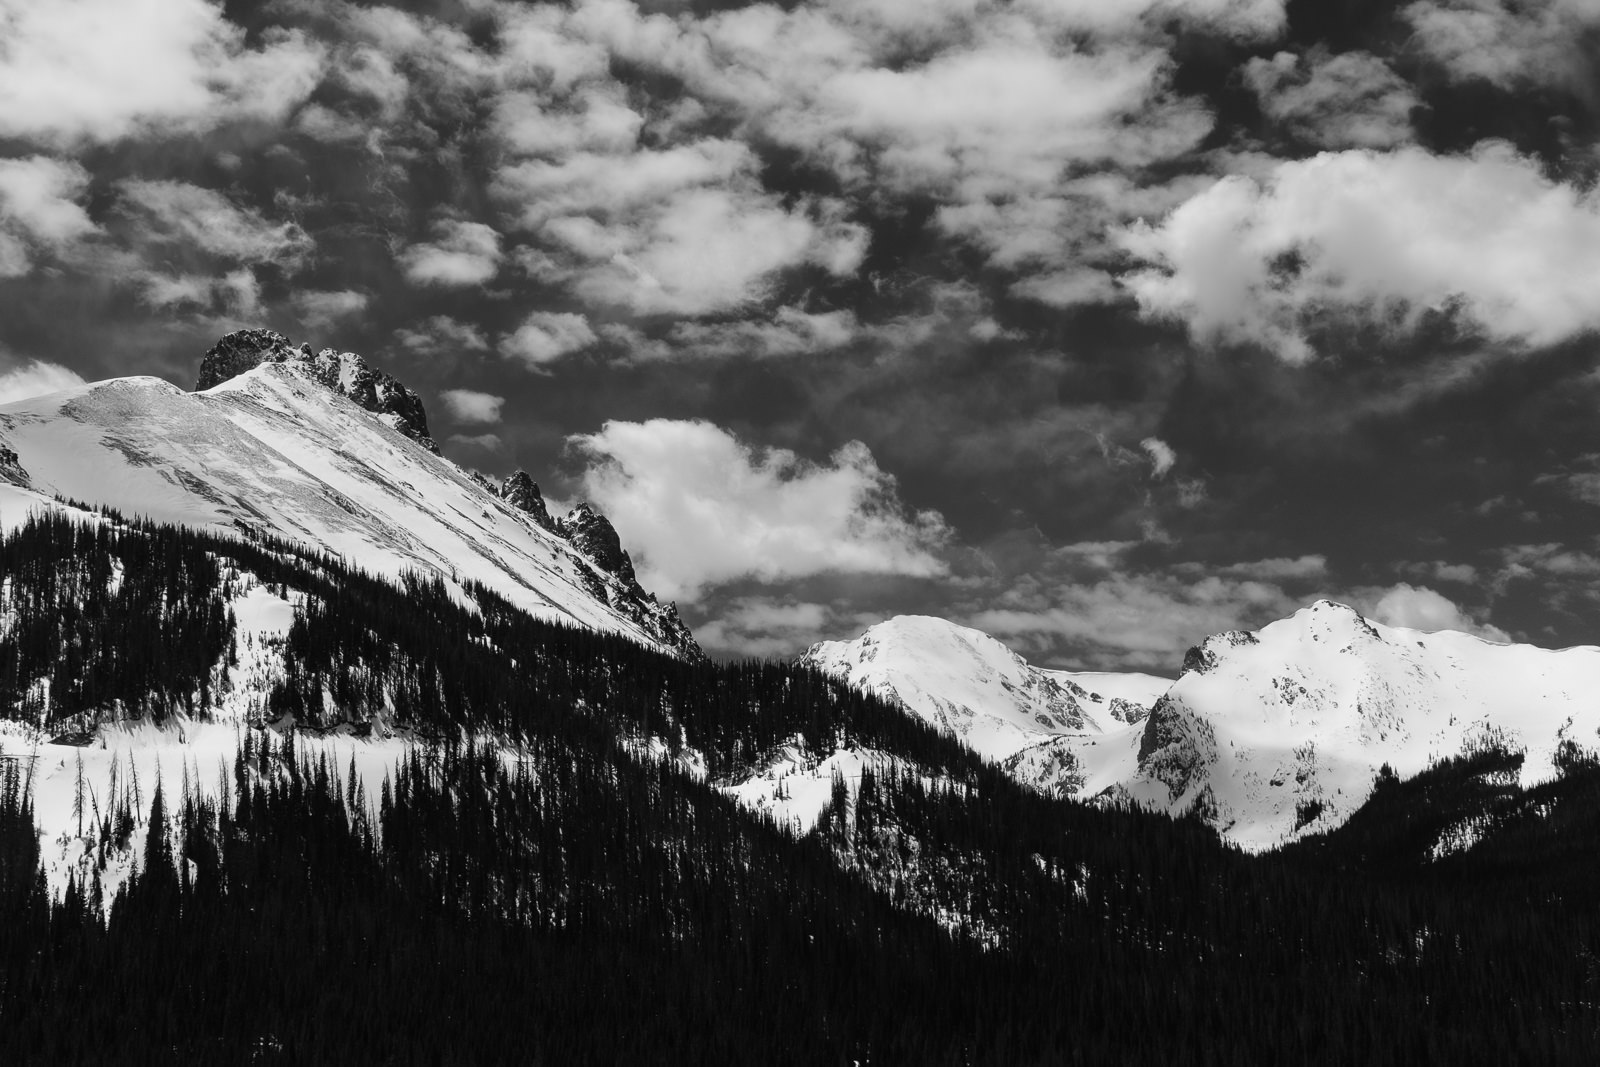 Day 149- 365 Day B&W Photo Challenge - The Nokhu Crags and Never Summer Mountain Range viewed from Poudre Canyon. This is the NW side of Rocky Mountain National Park. - Fuji X-T3, XF23mm f/2, Acros R Film Simulation